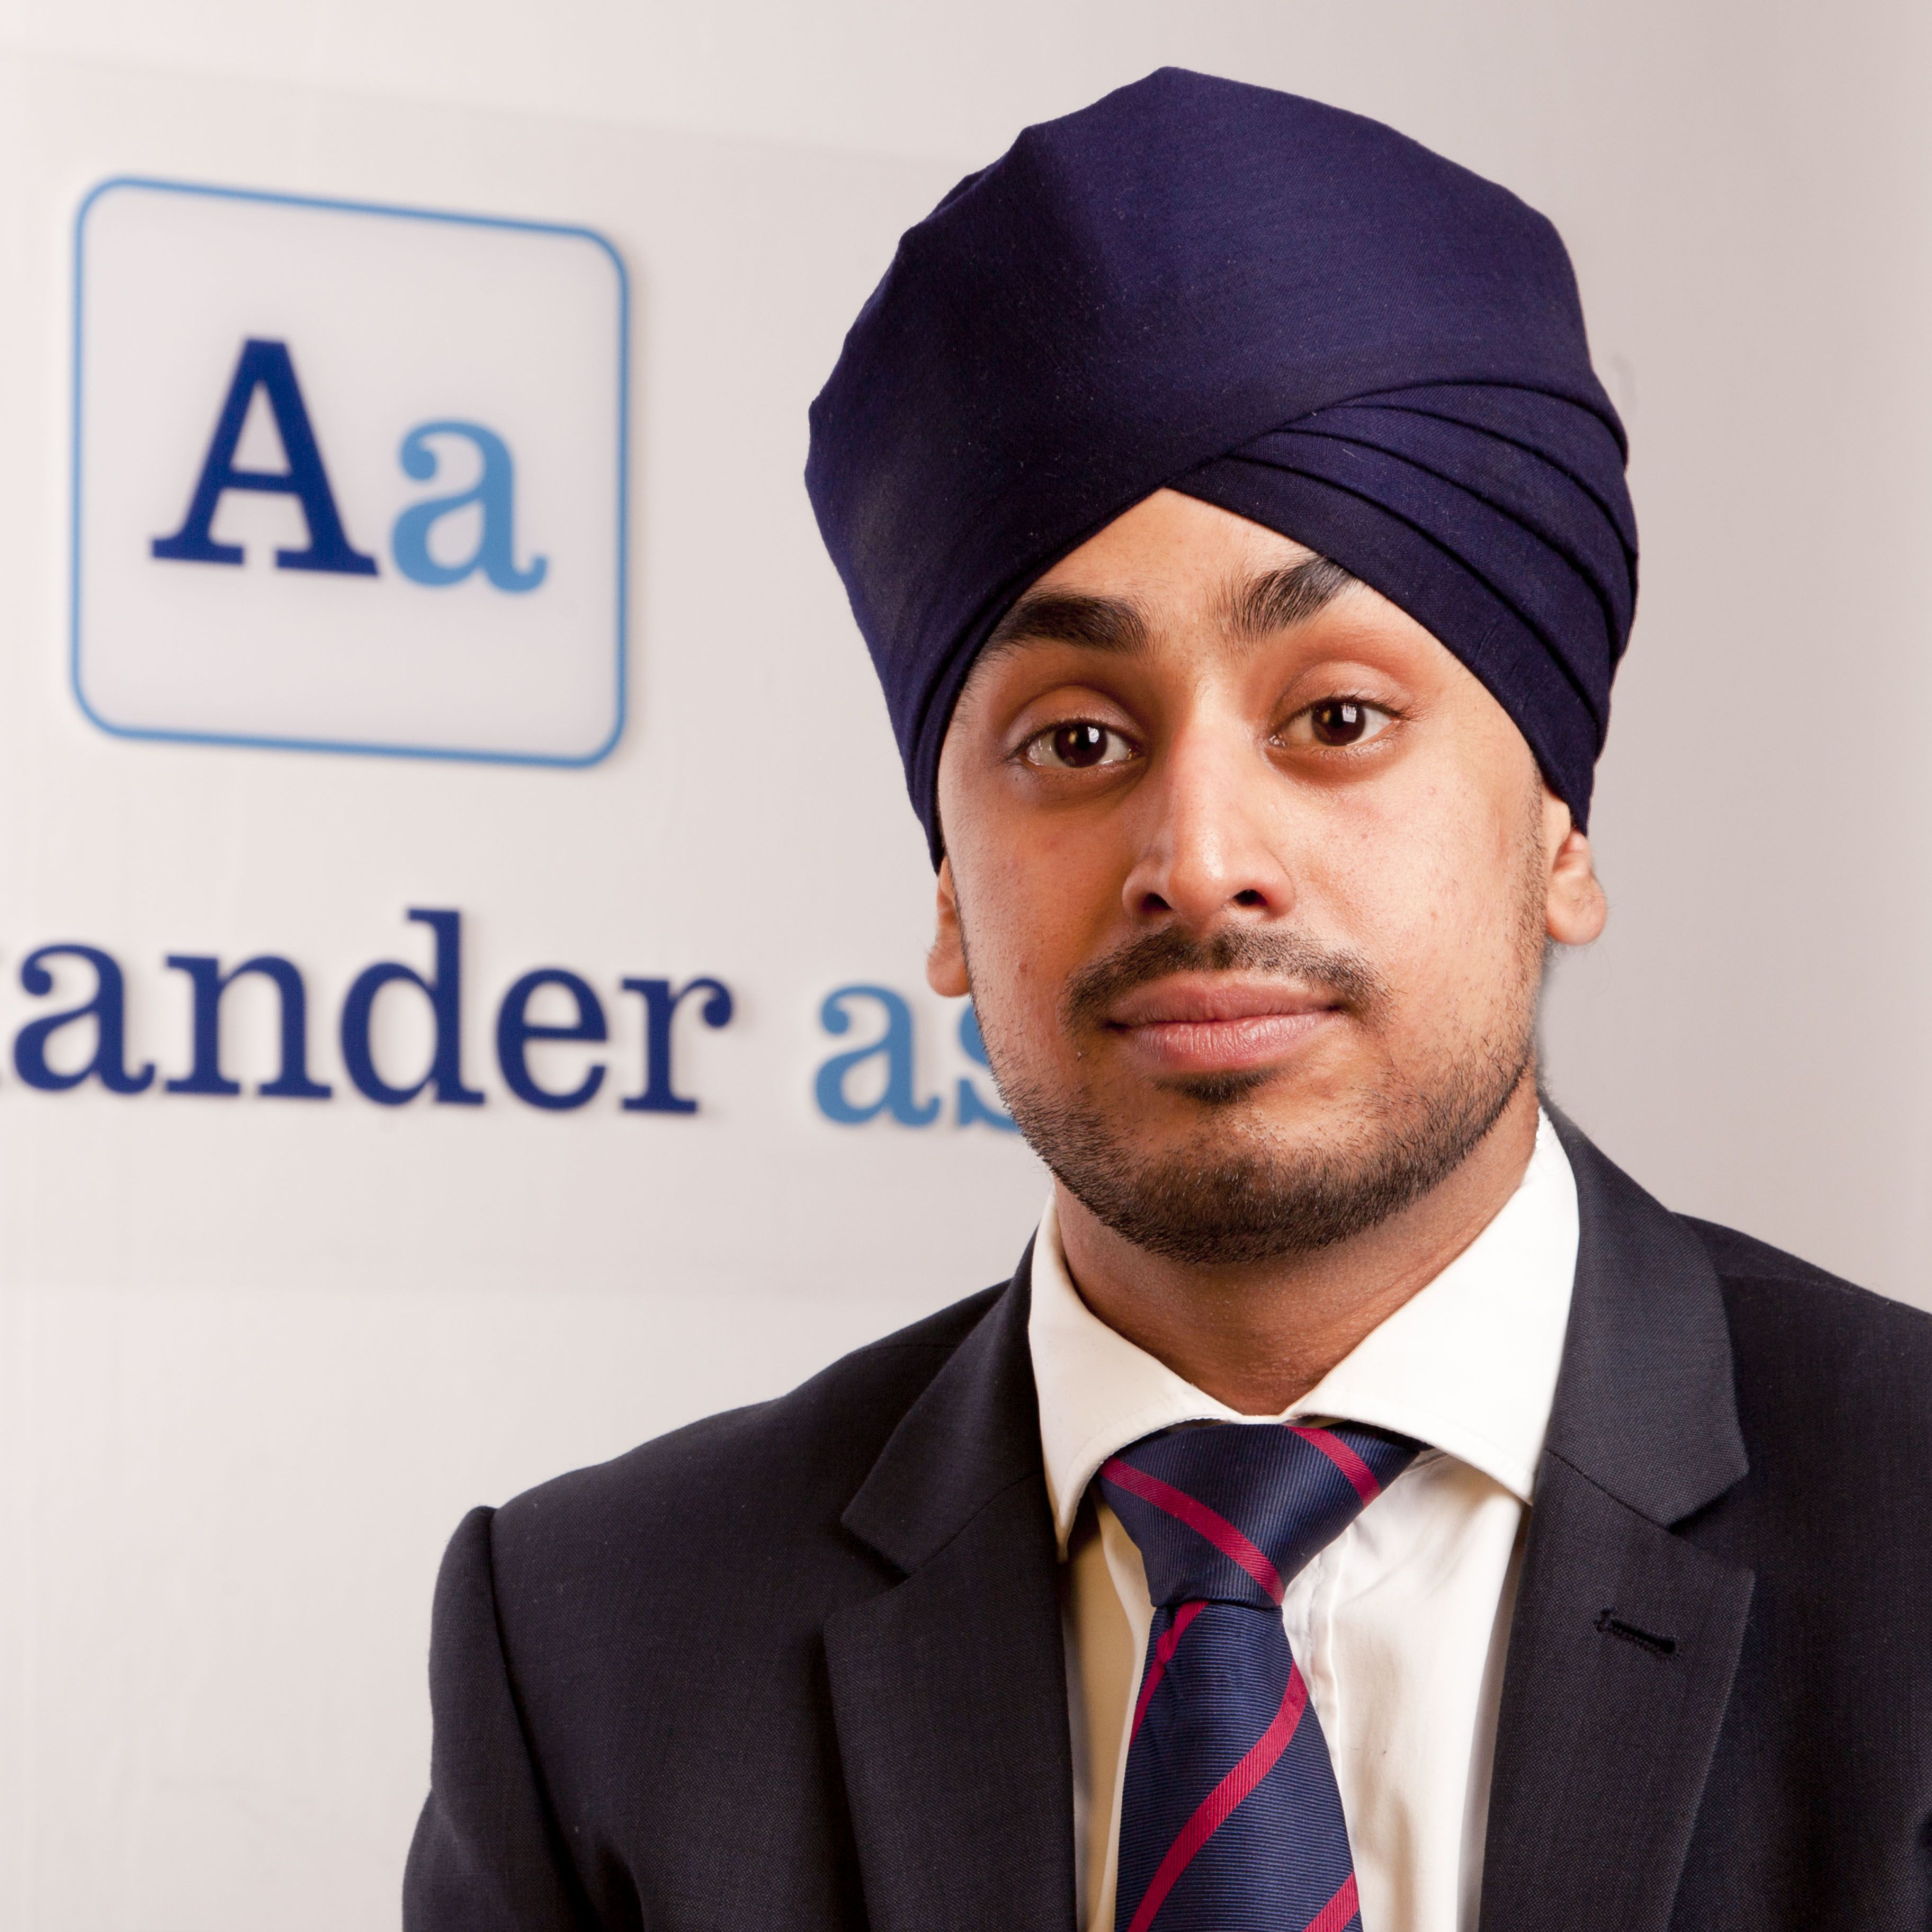 unil patel works a small number of investment banks at full registration at alexander ash the recruitment firm for finance technology and consulting jobs